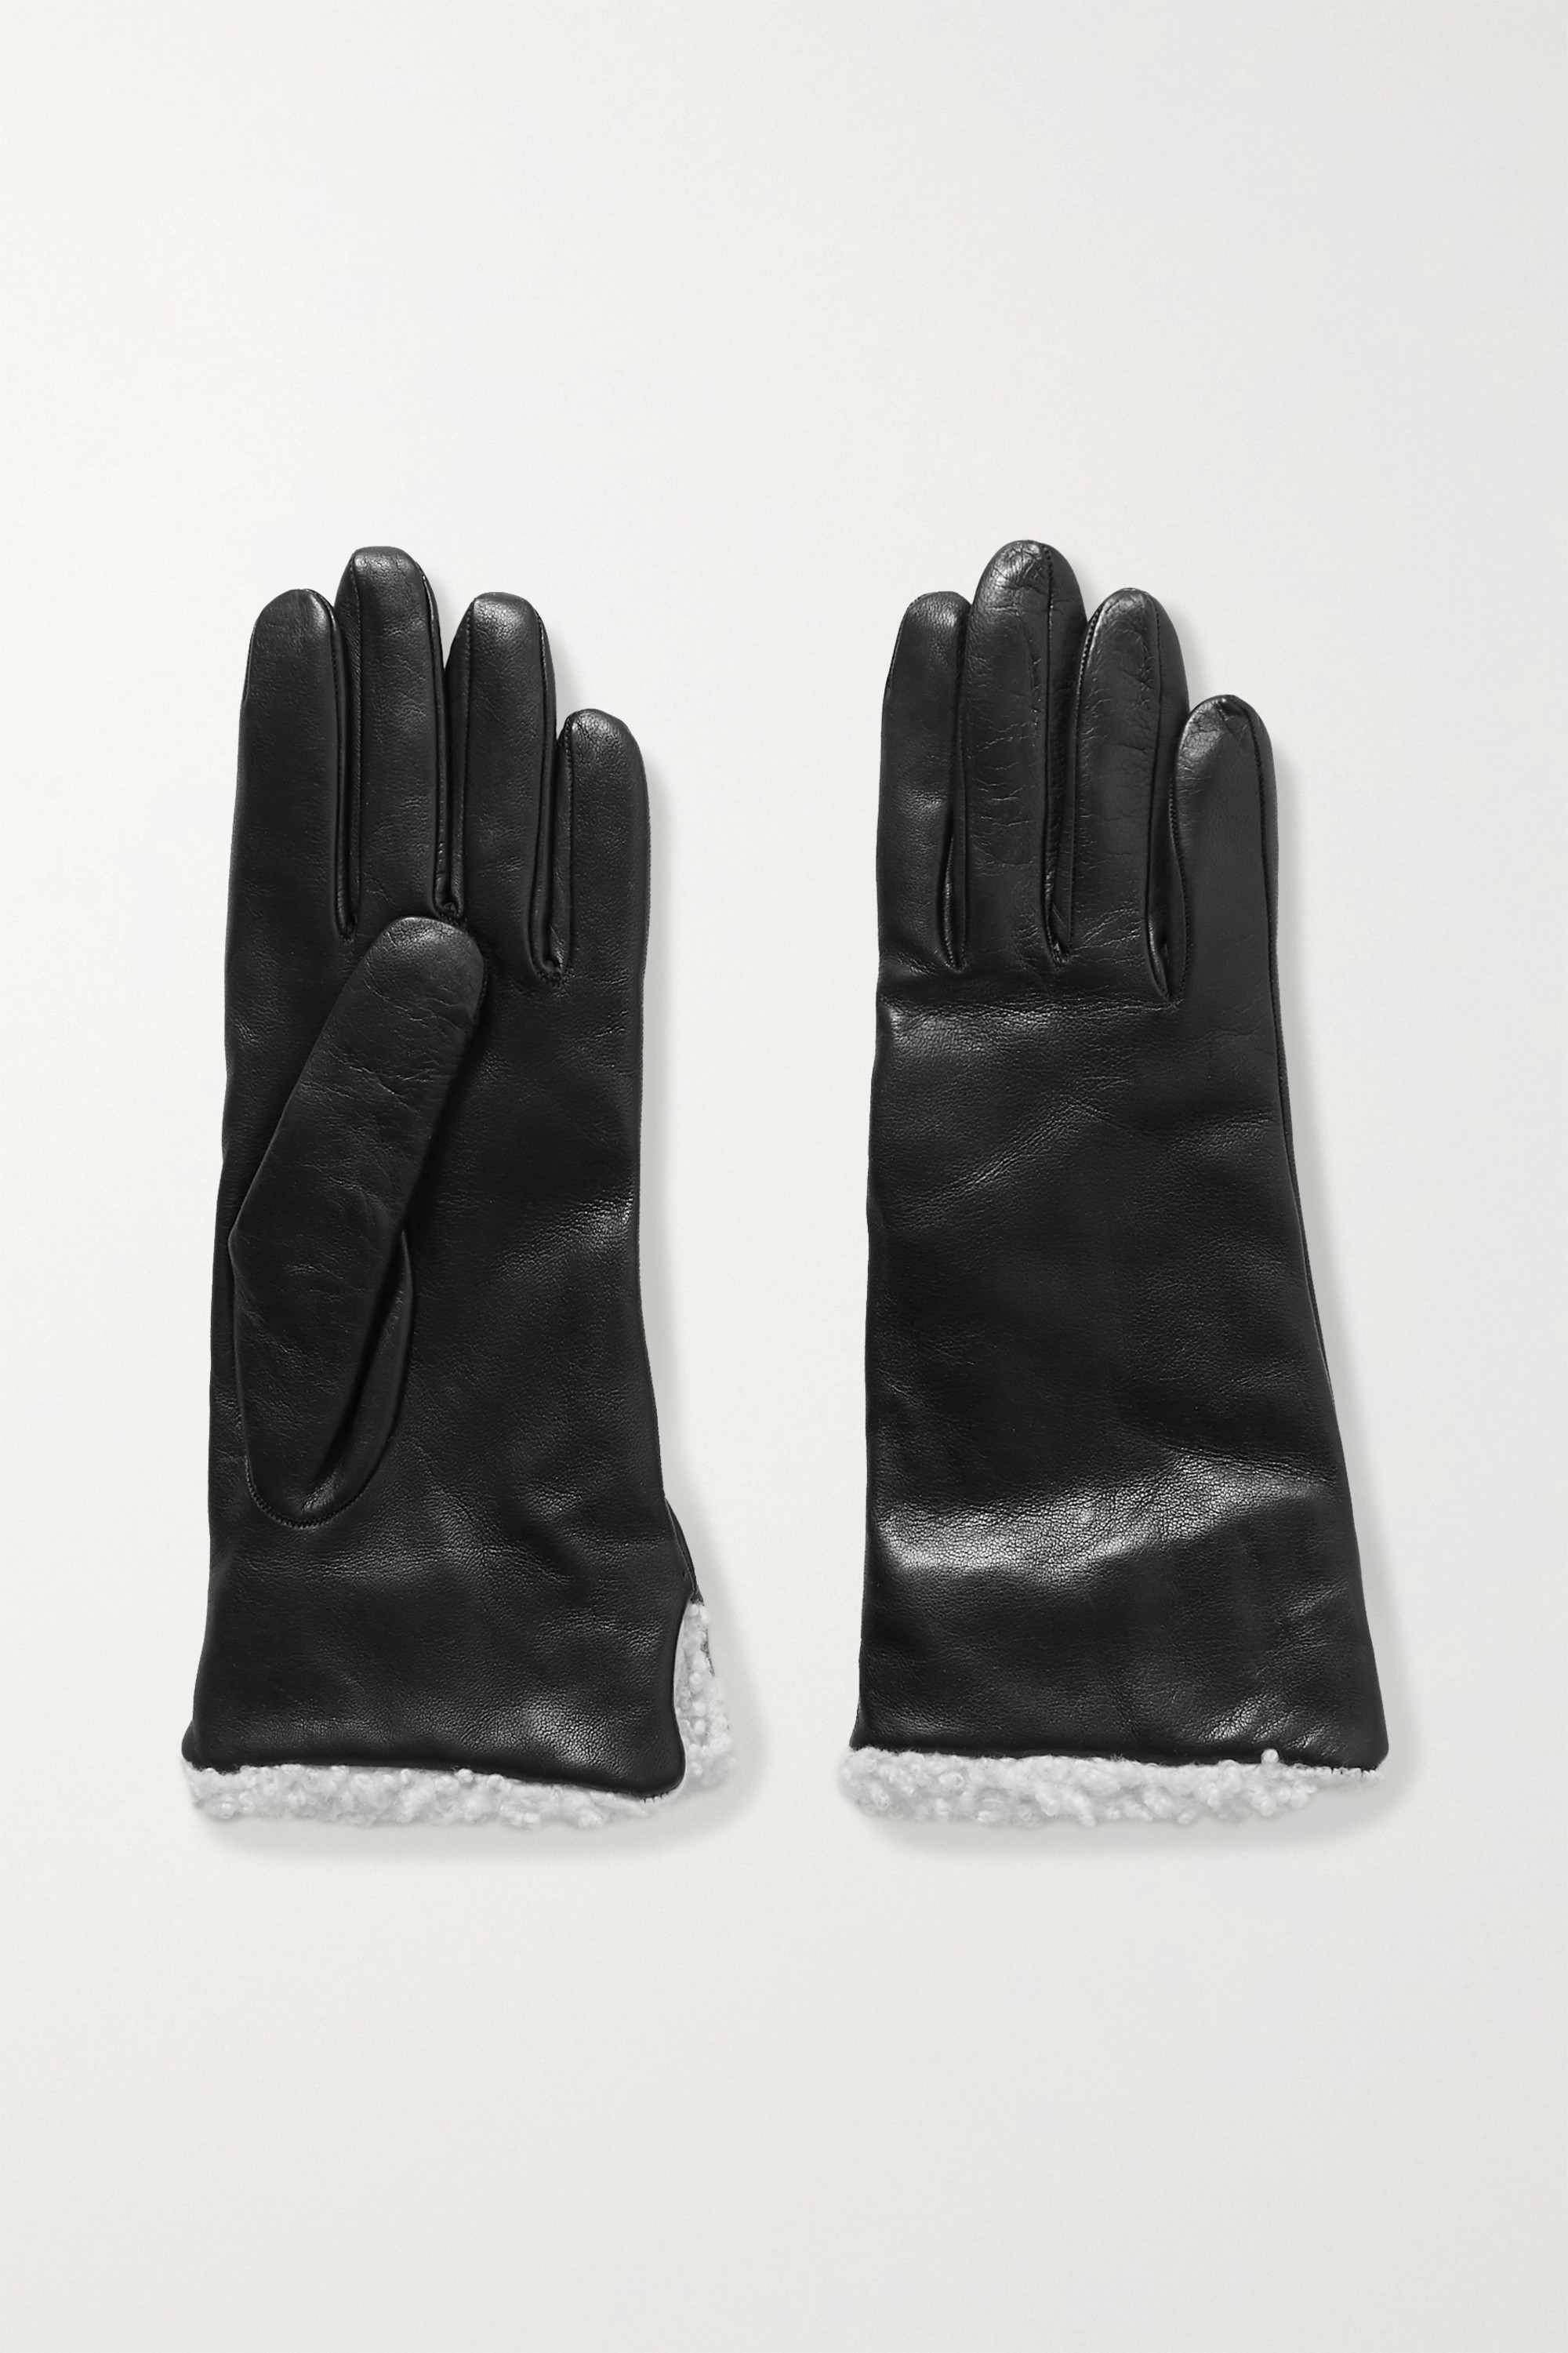 CLYDE Shearling-trimmed leather gloves